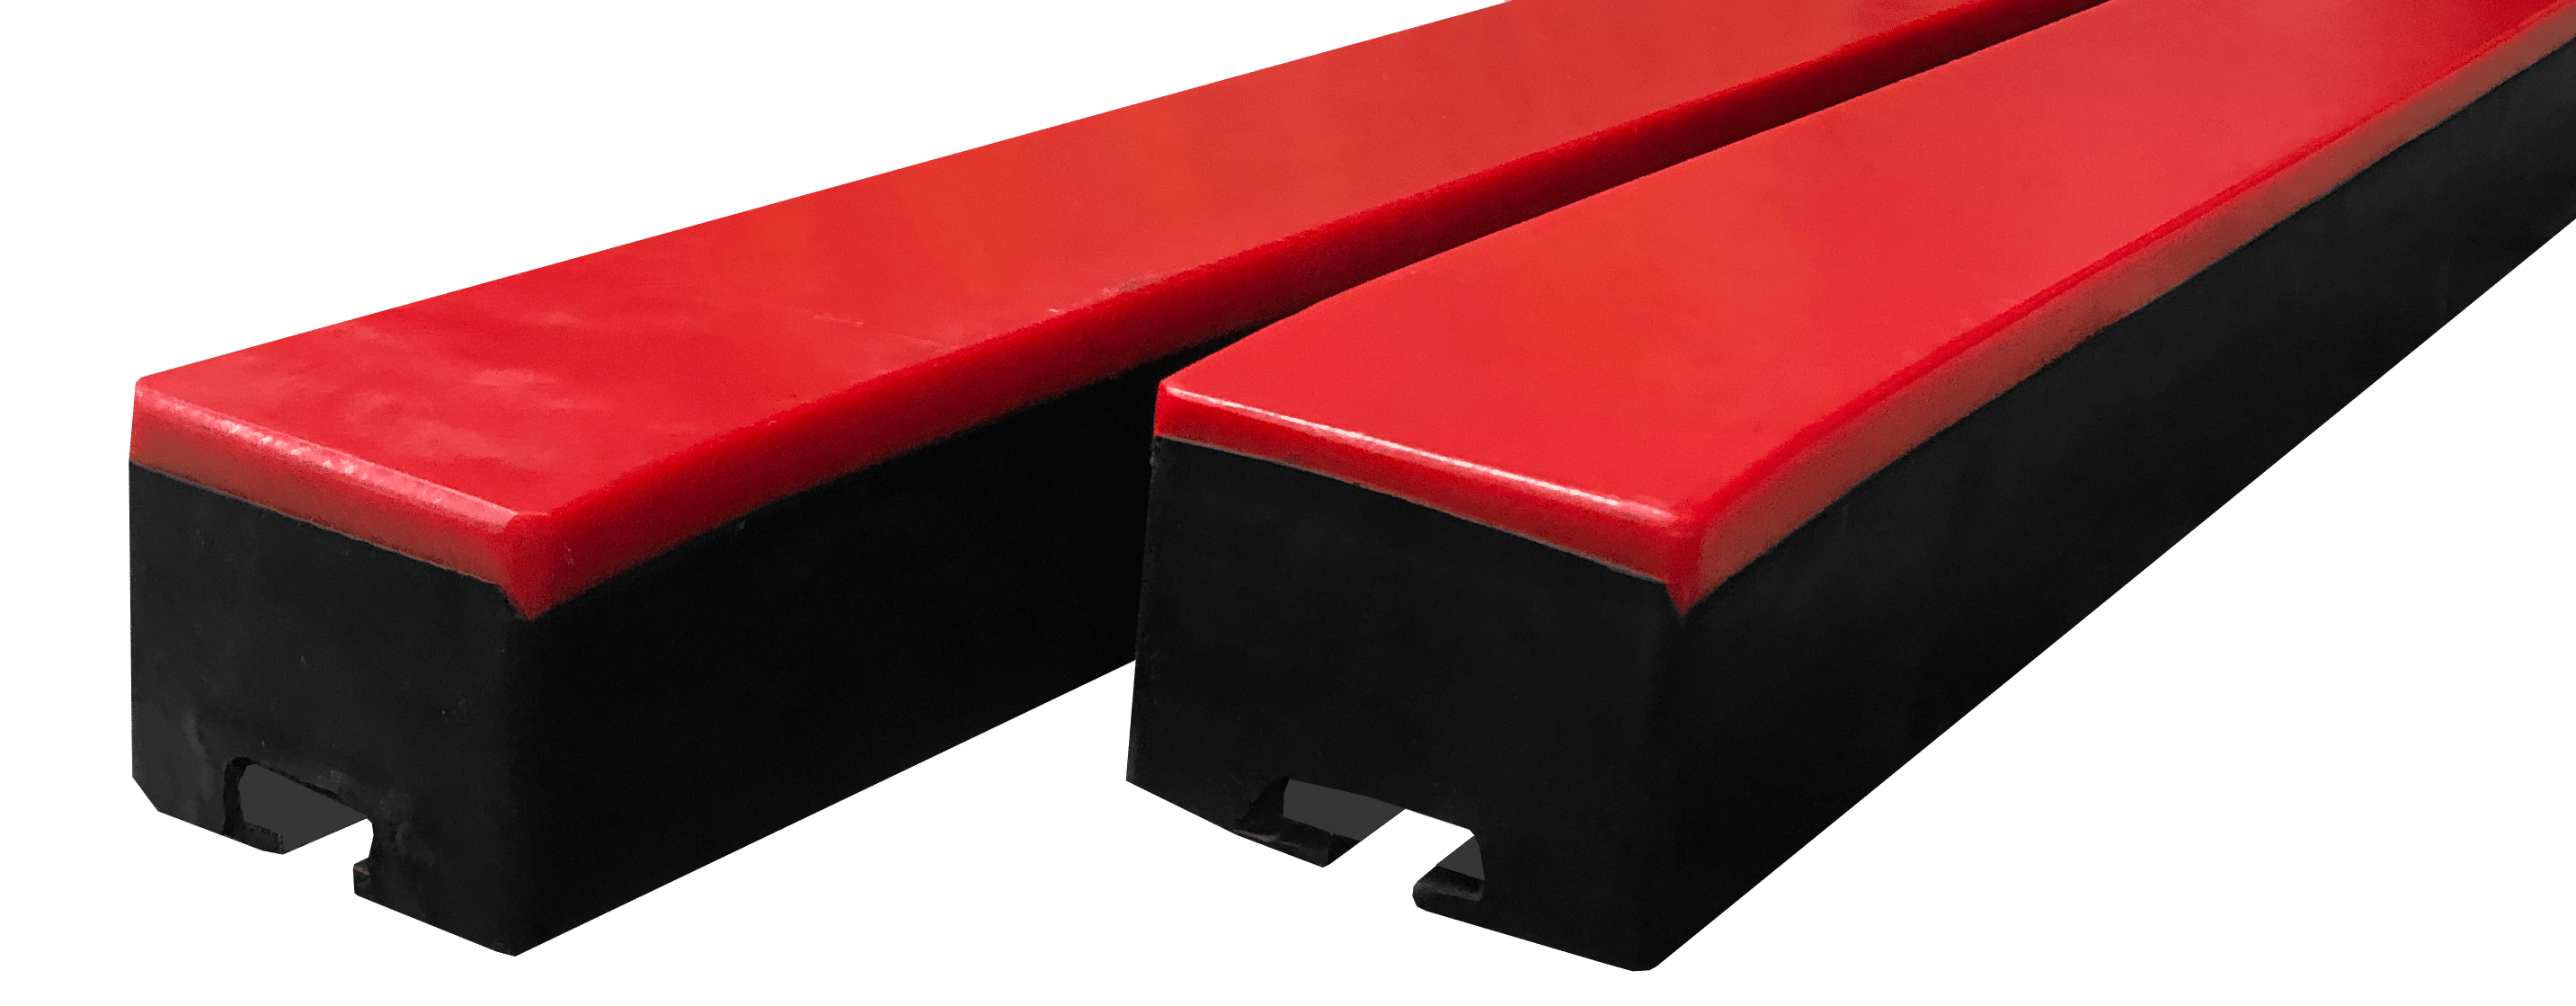 ARCH Environmental Equipment, Inc | Belt Support System | Simplicity Impact System